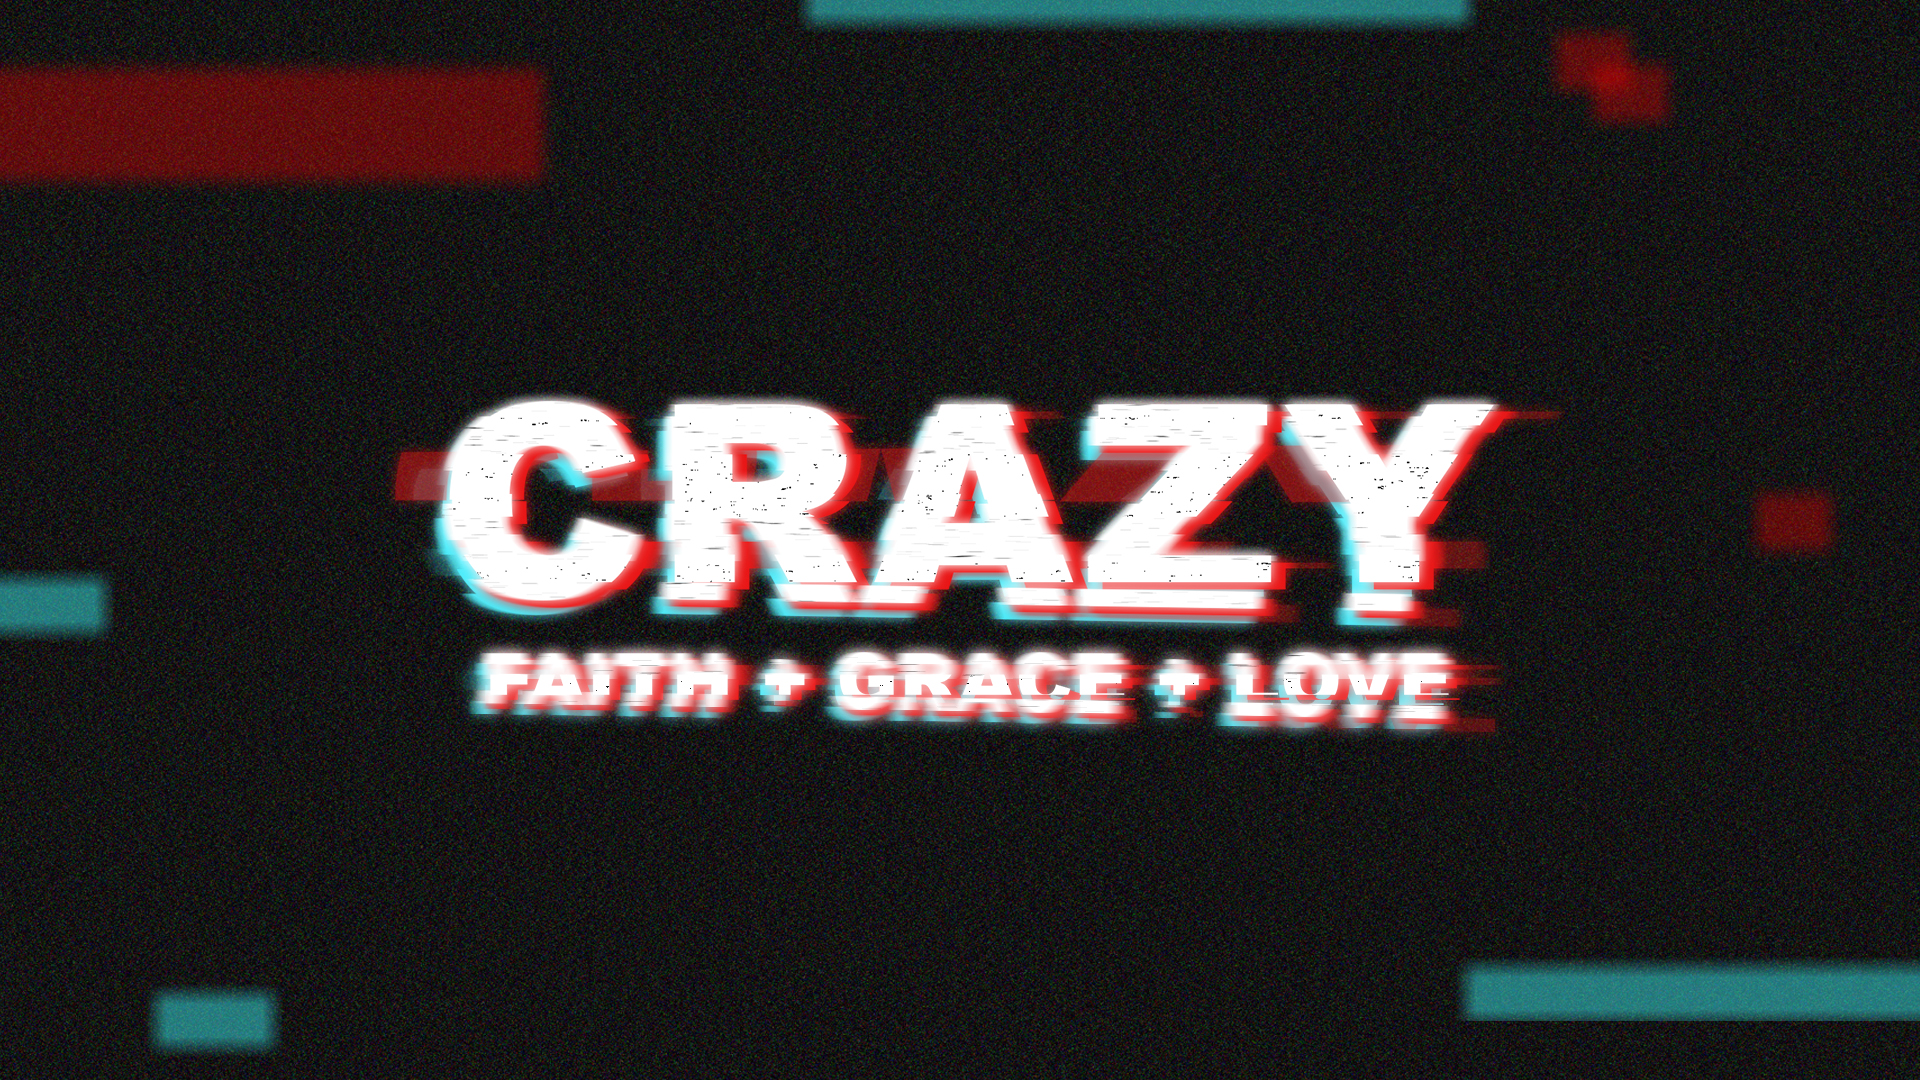 Crazy Faith Grace and Love